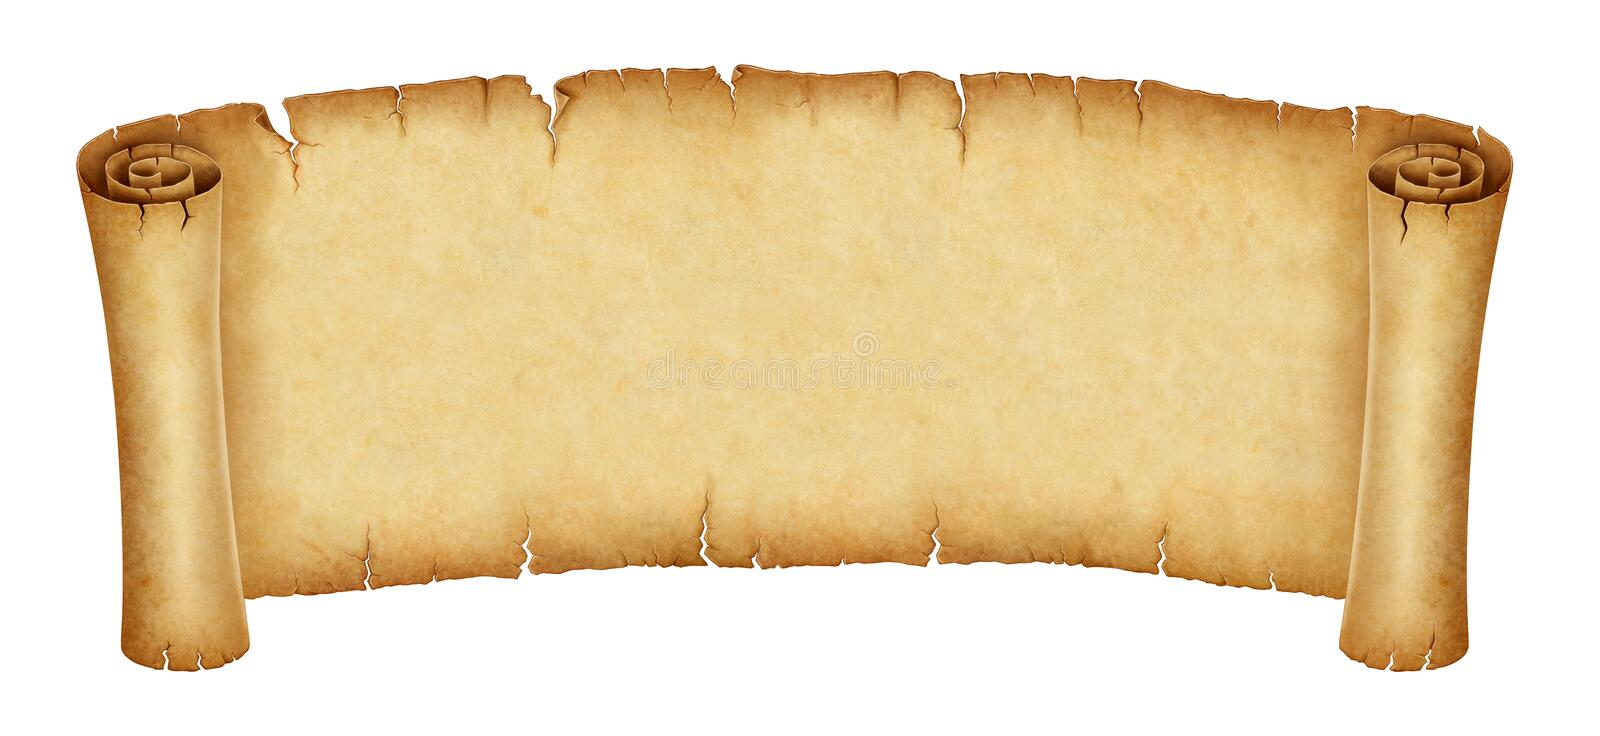 Old scroll banner isolated on white background royalty free stock image